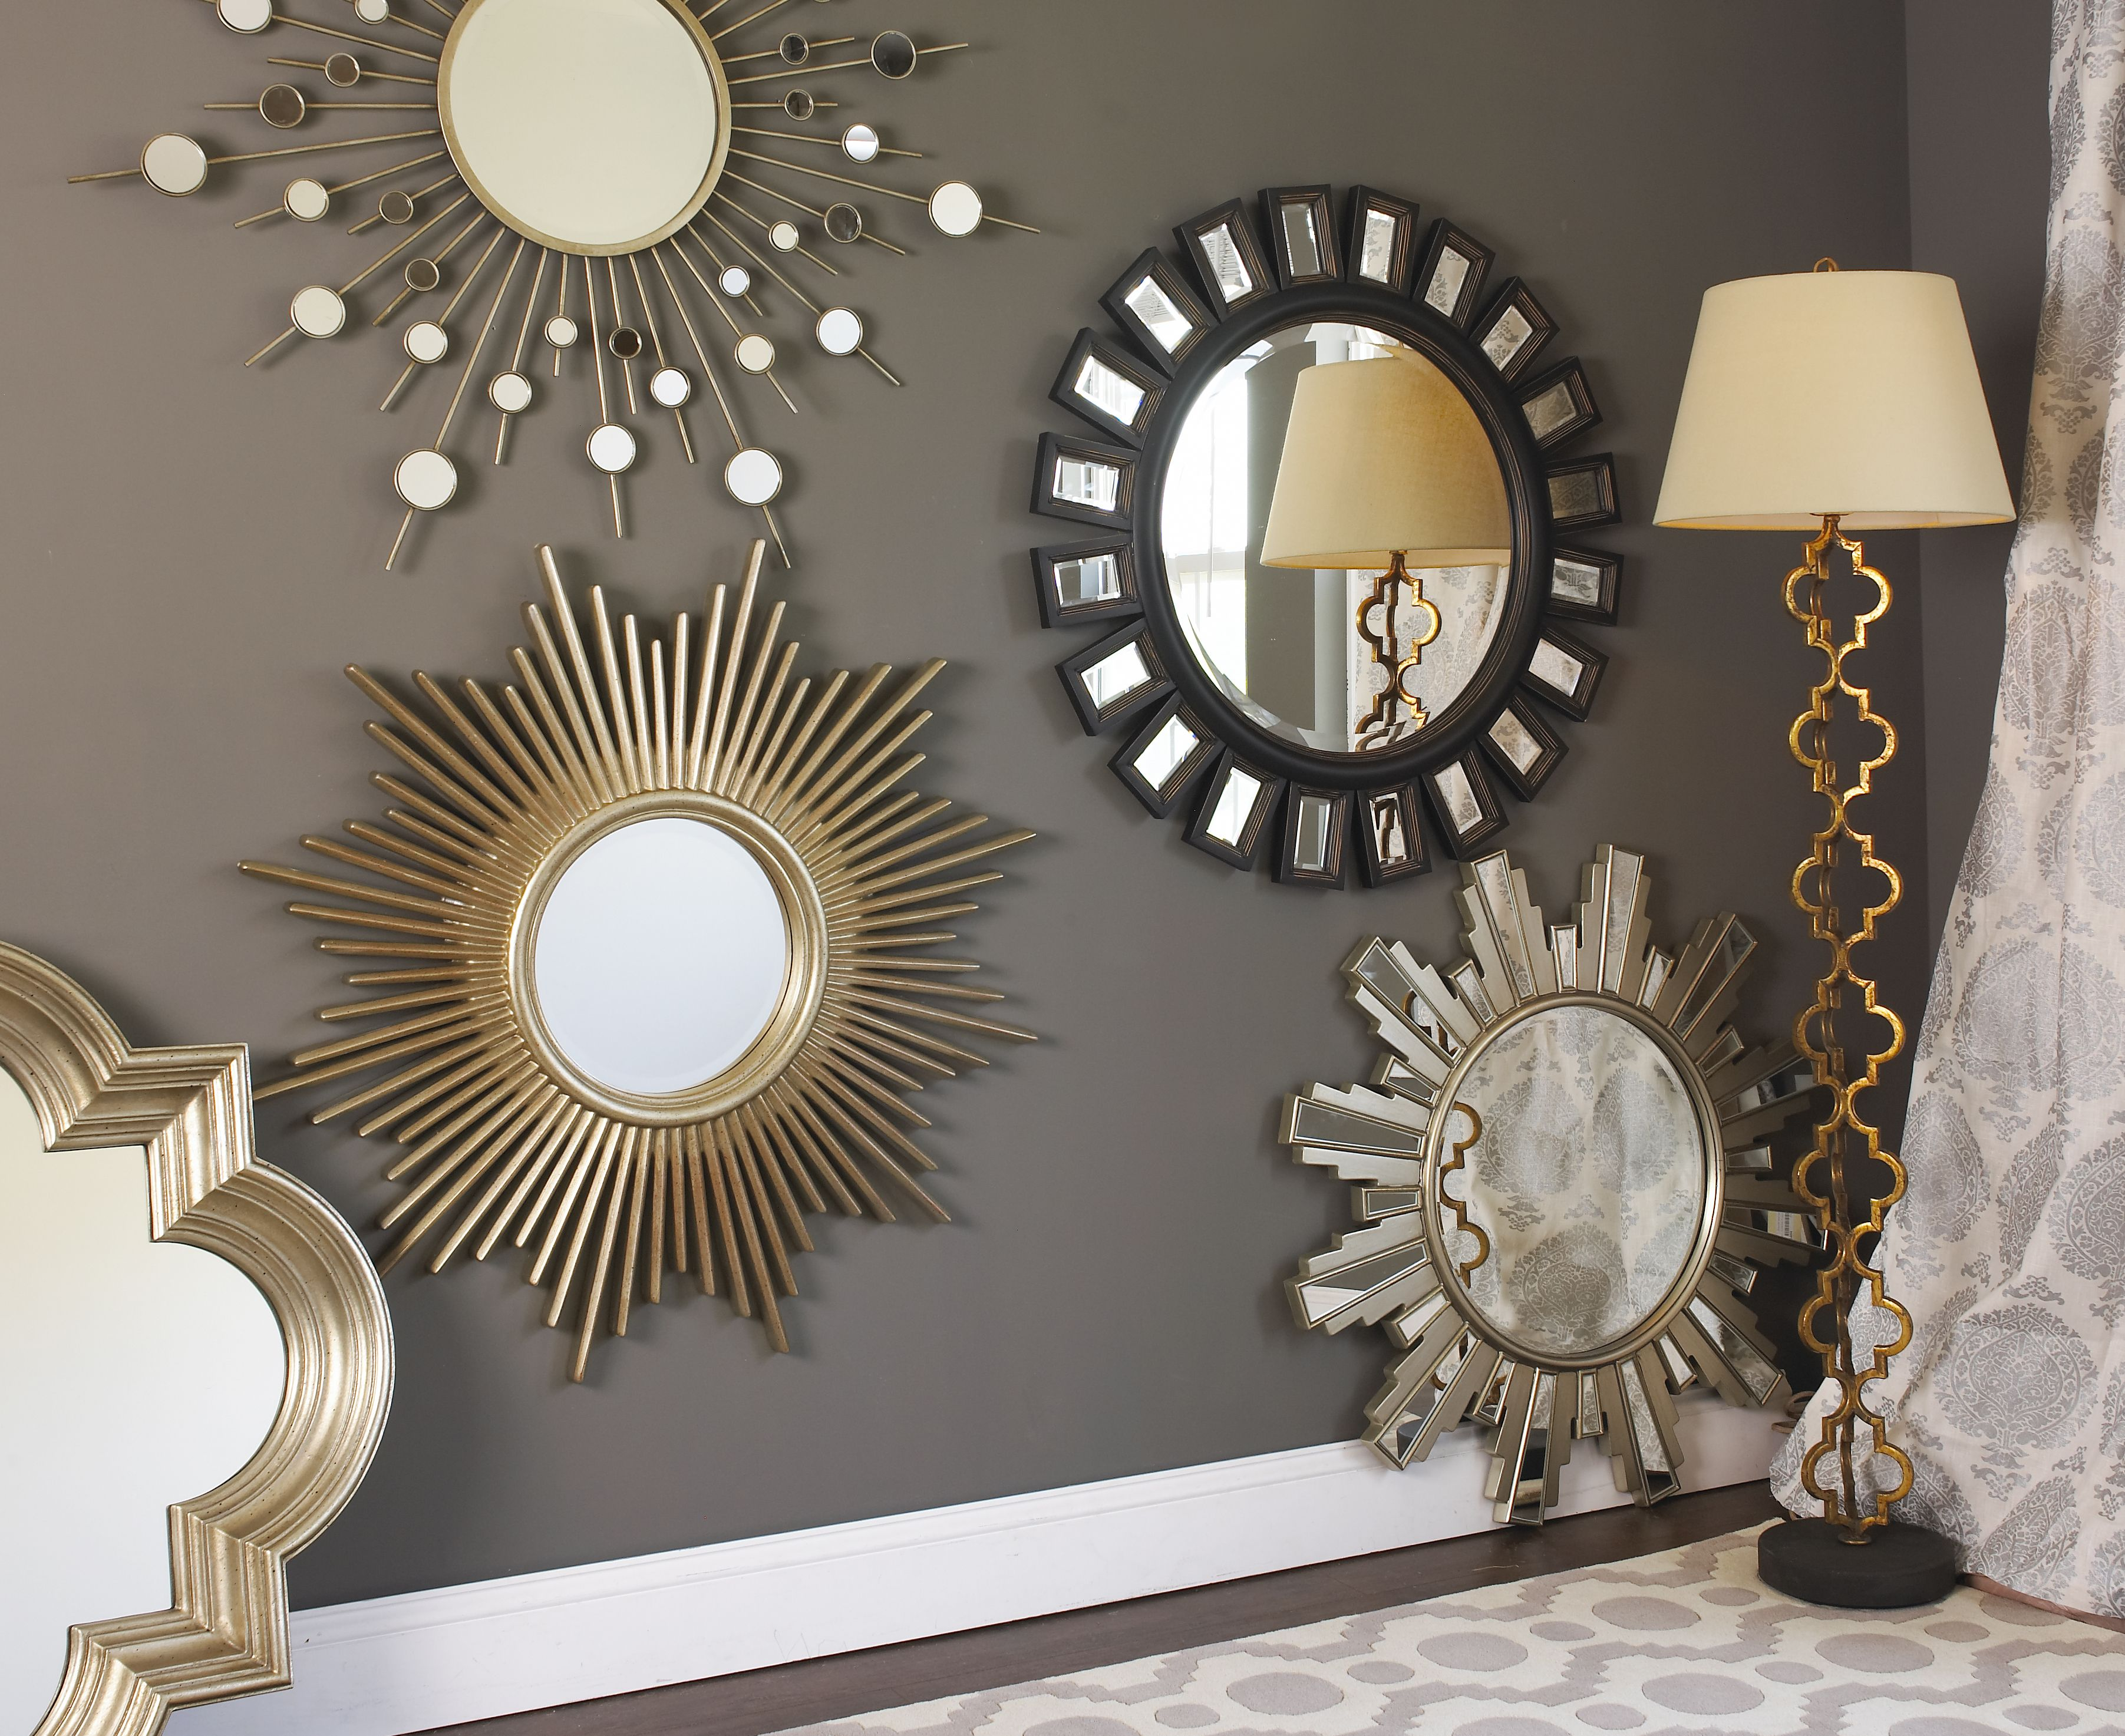 Selection Of Bathroom Light Fixtures: Shades Of Light Mirror Selection